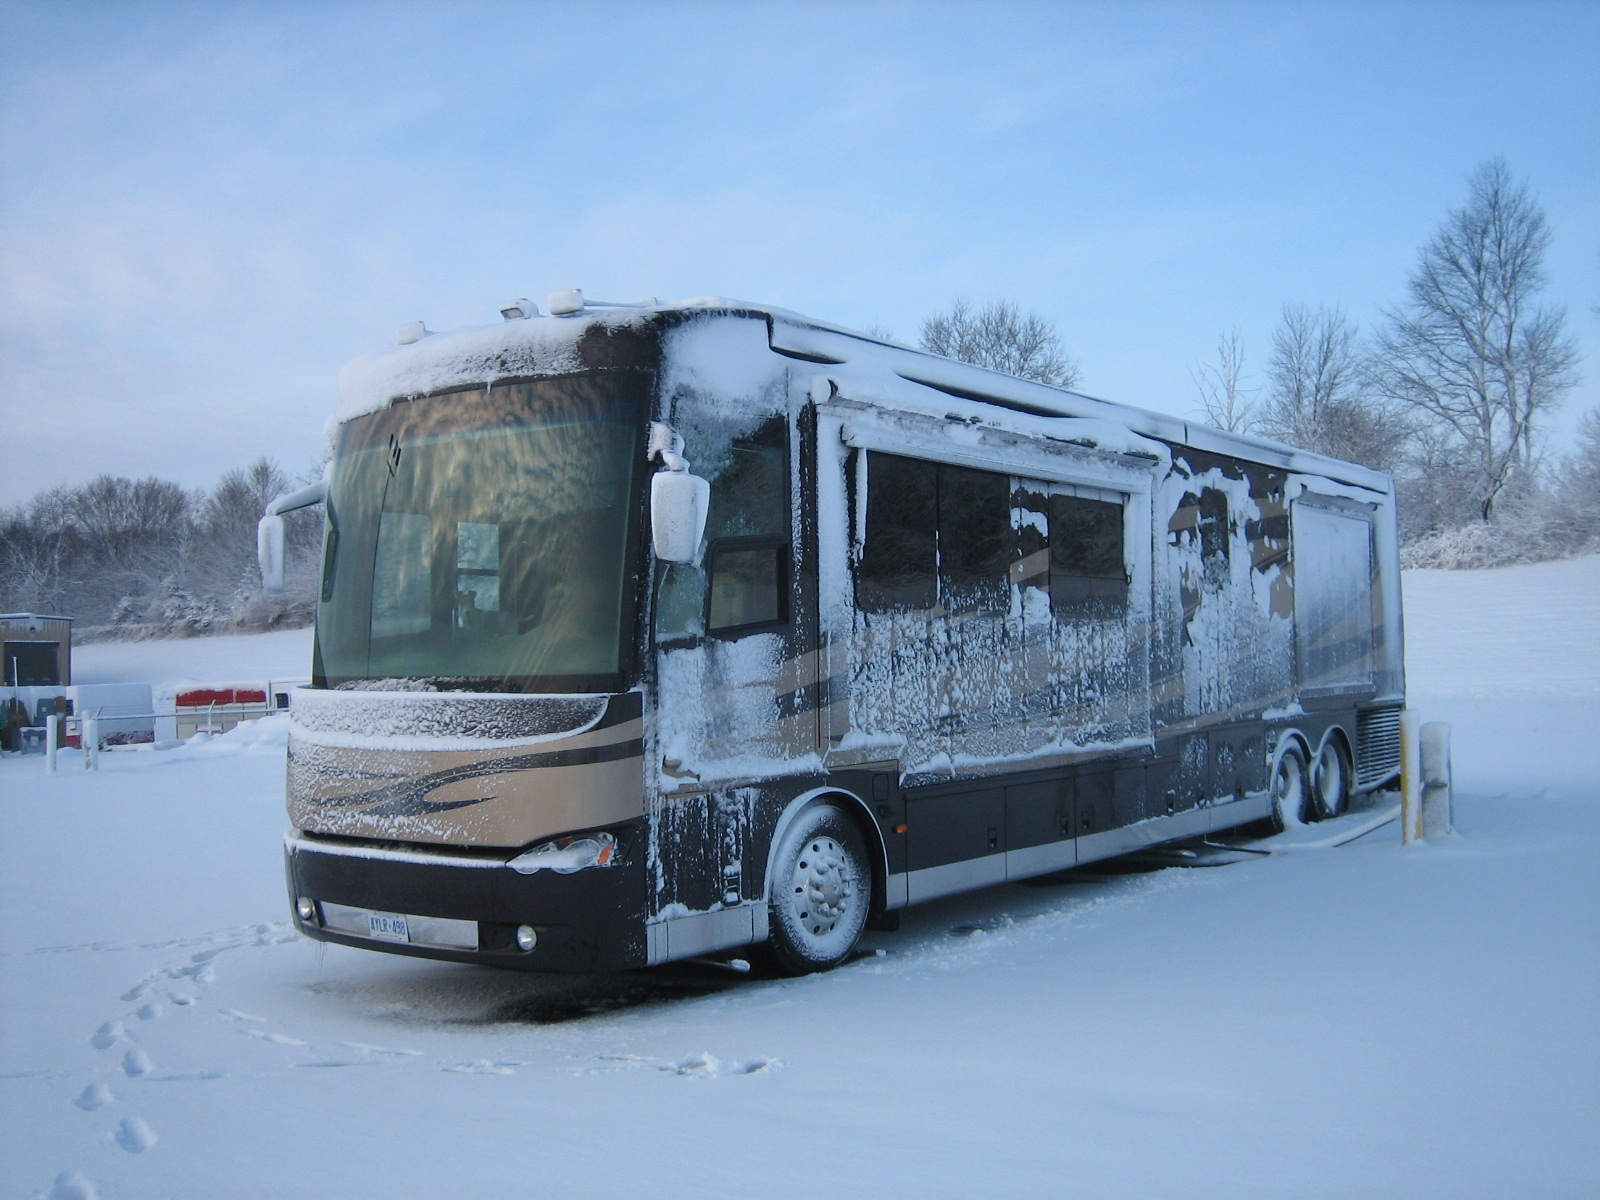 A motorhome sits on a snowby lot encrusted with snow and icicles.